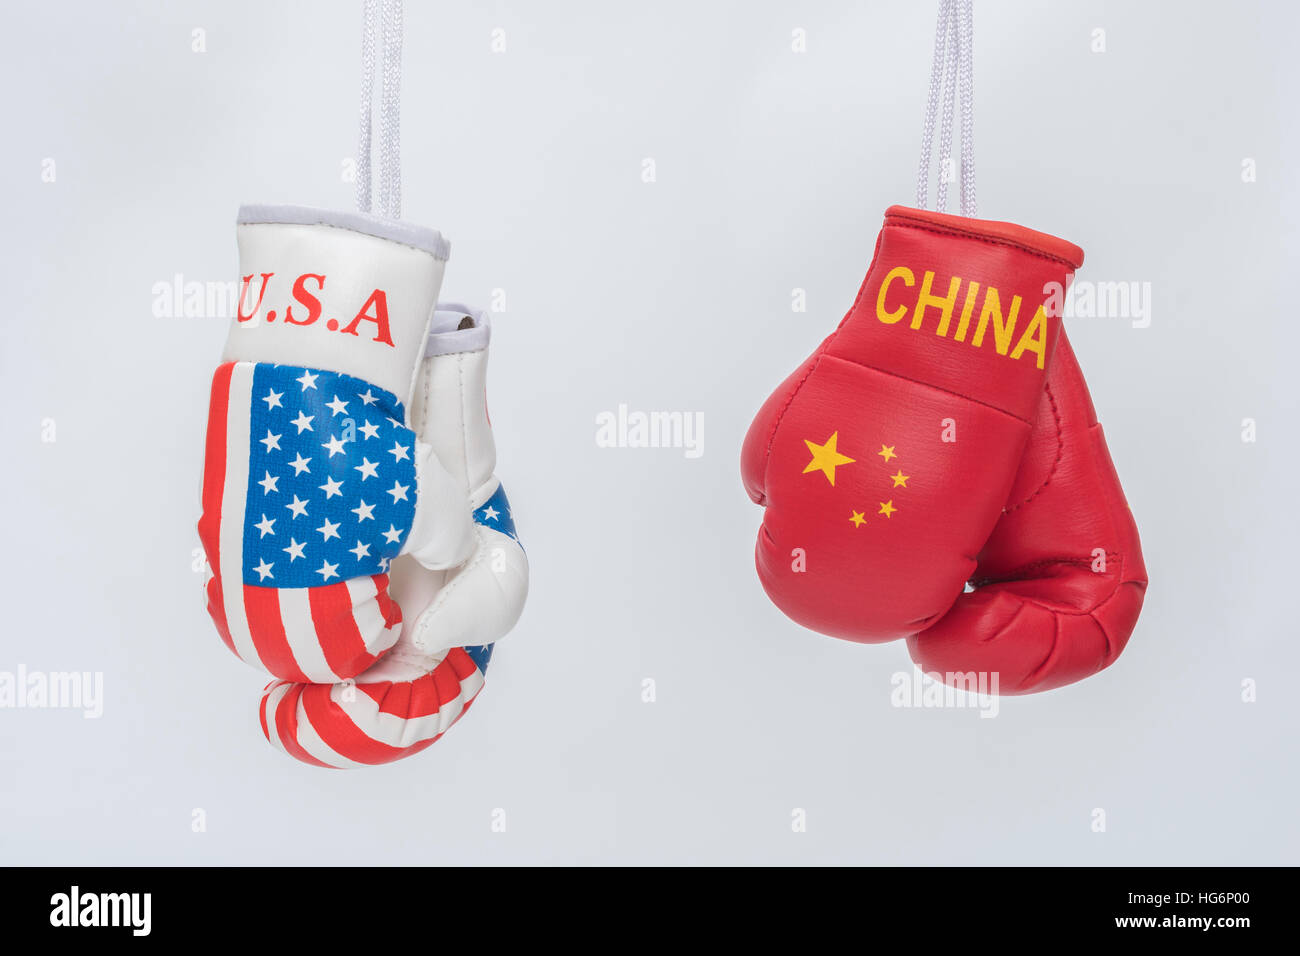 Mini US Stars & Stripes boxing gloves - metaphor for concept US-Chinese tensions, US China trade war, tariff - Stock Image